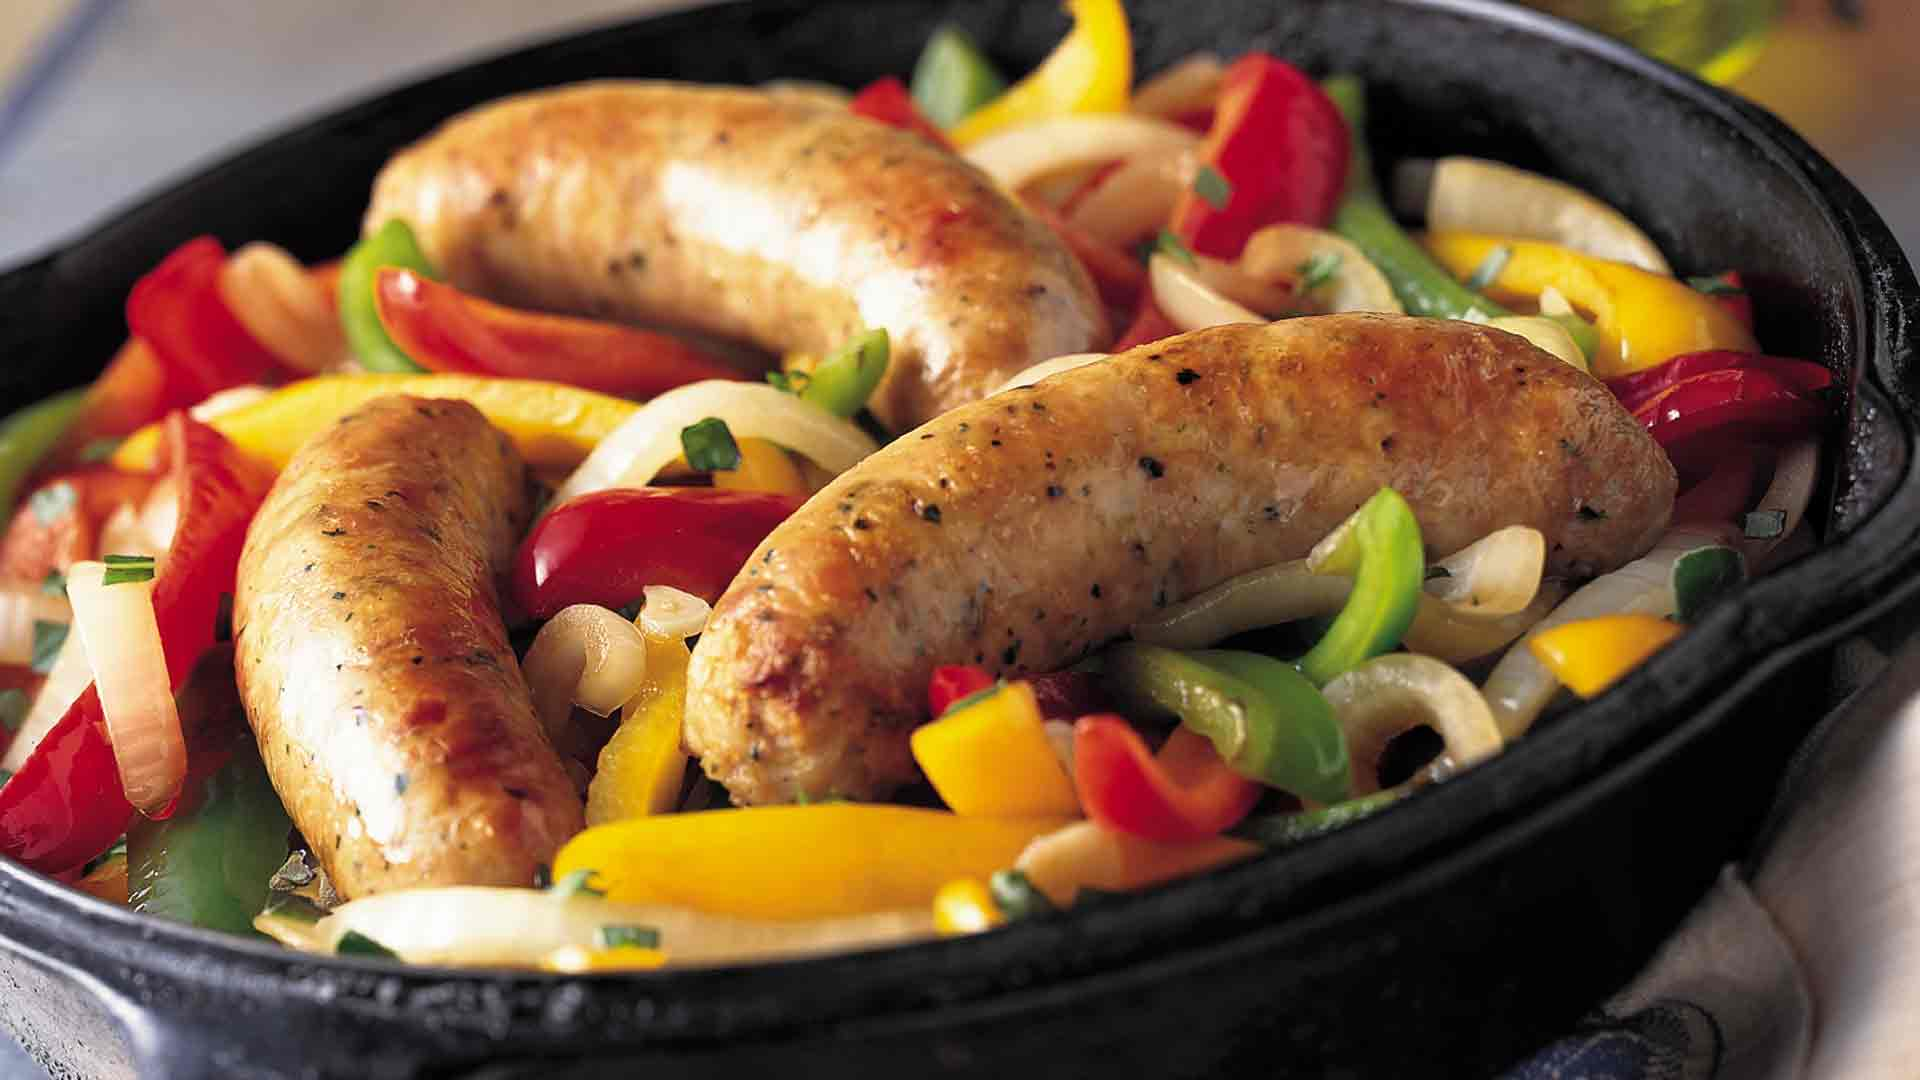 This is the best homemade italian sausage recipe.